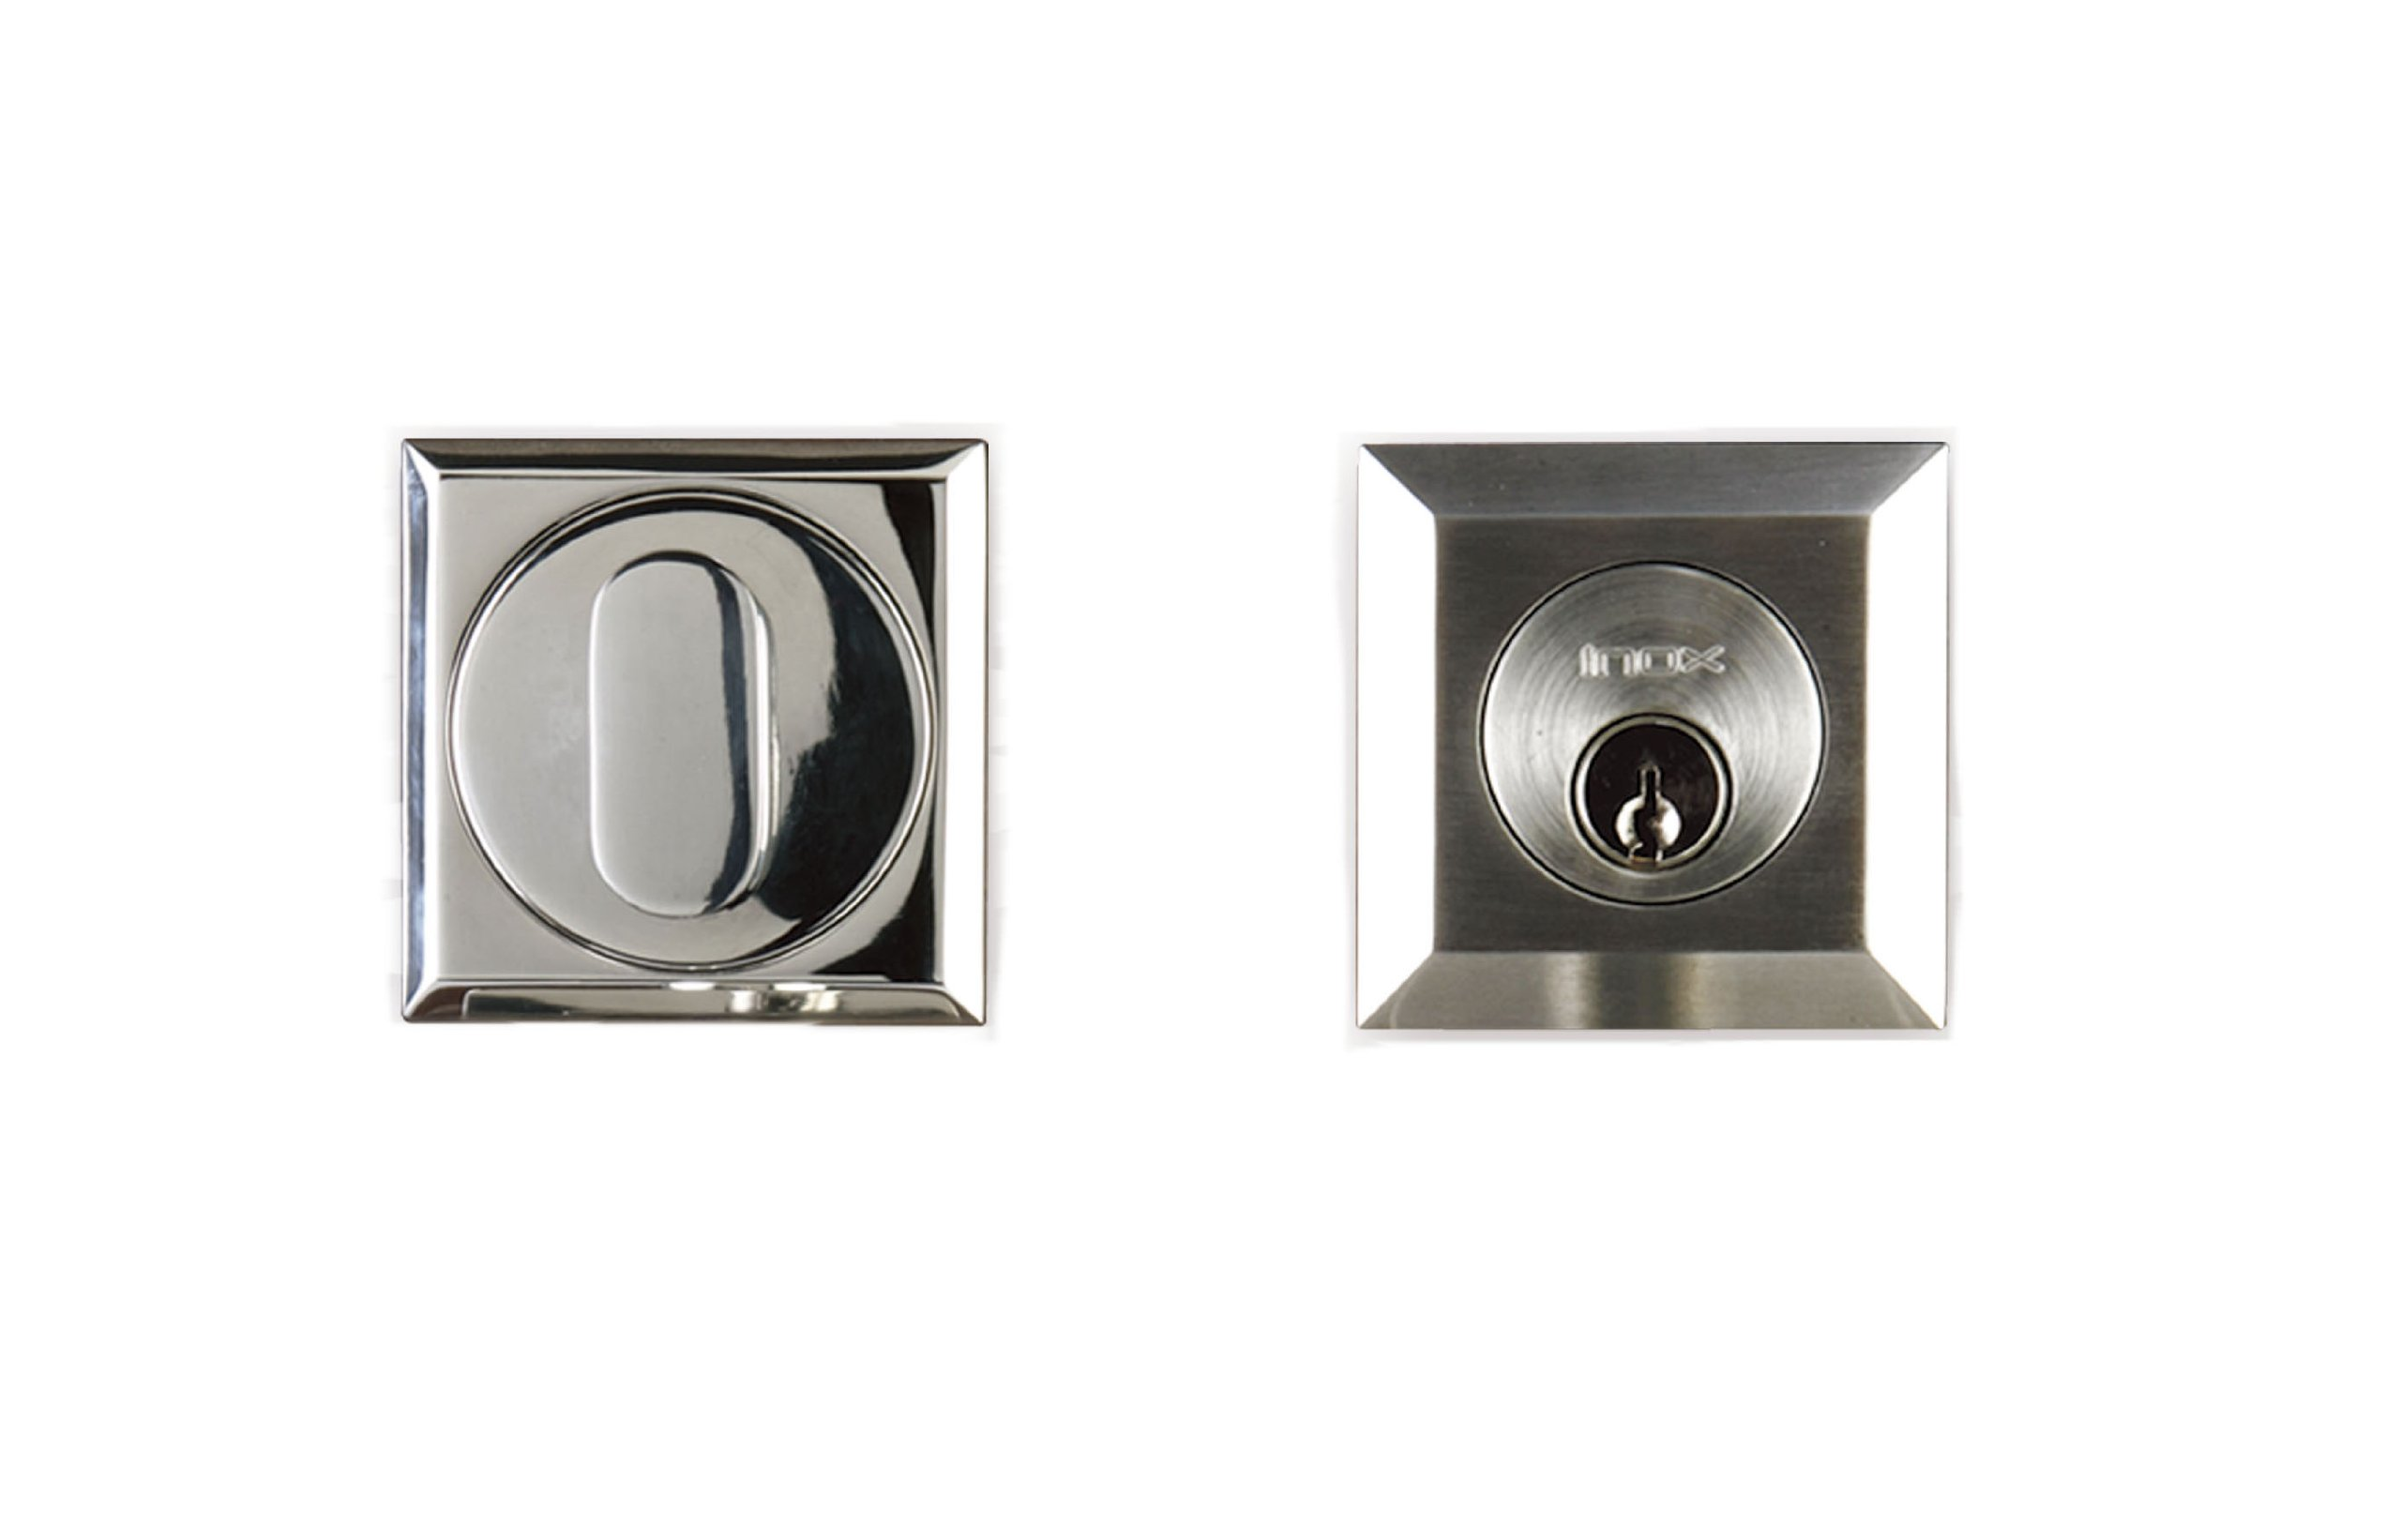 INOX SD320B6-32D Square Double-Cylinder Deadbolt, Satin Stainless Steel